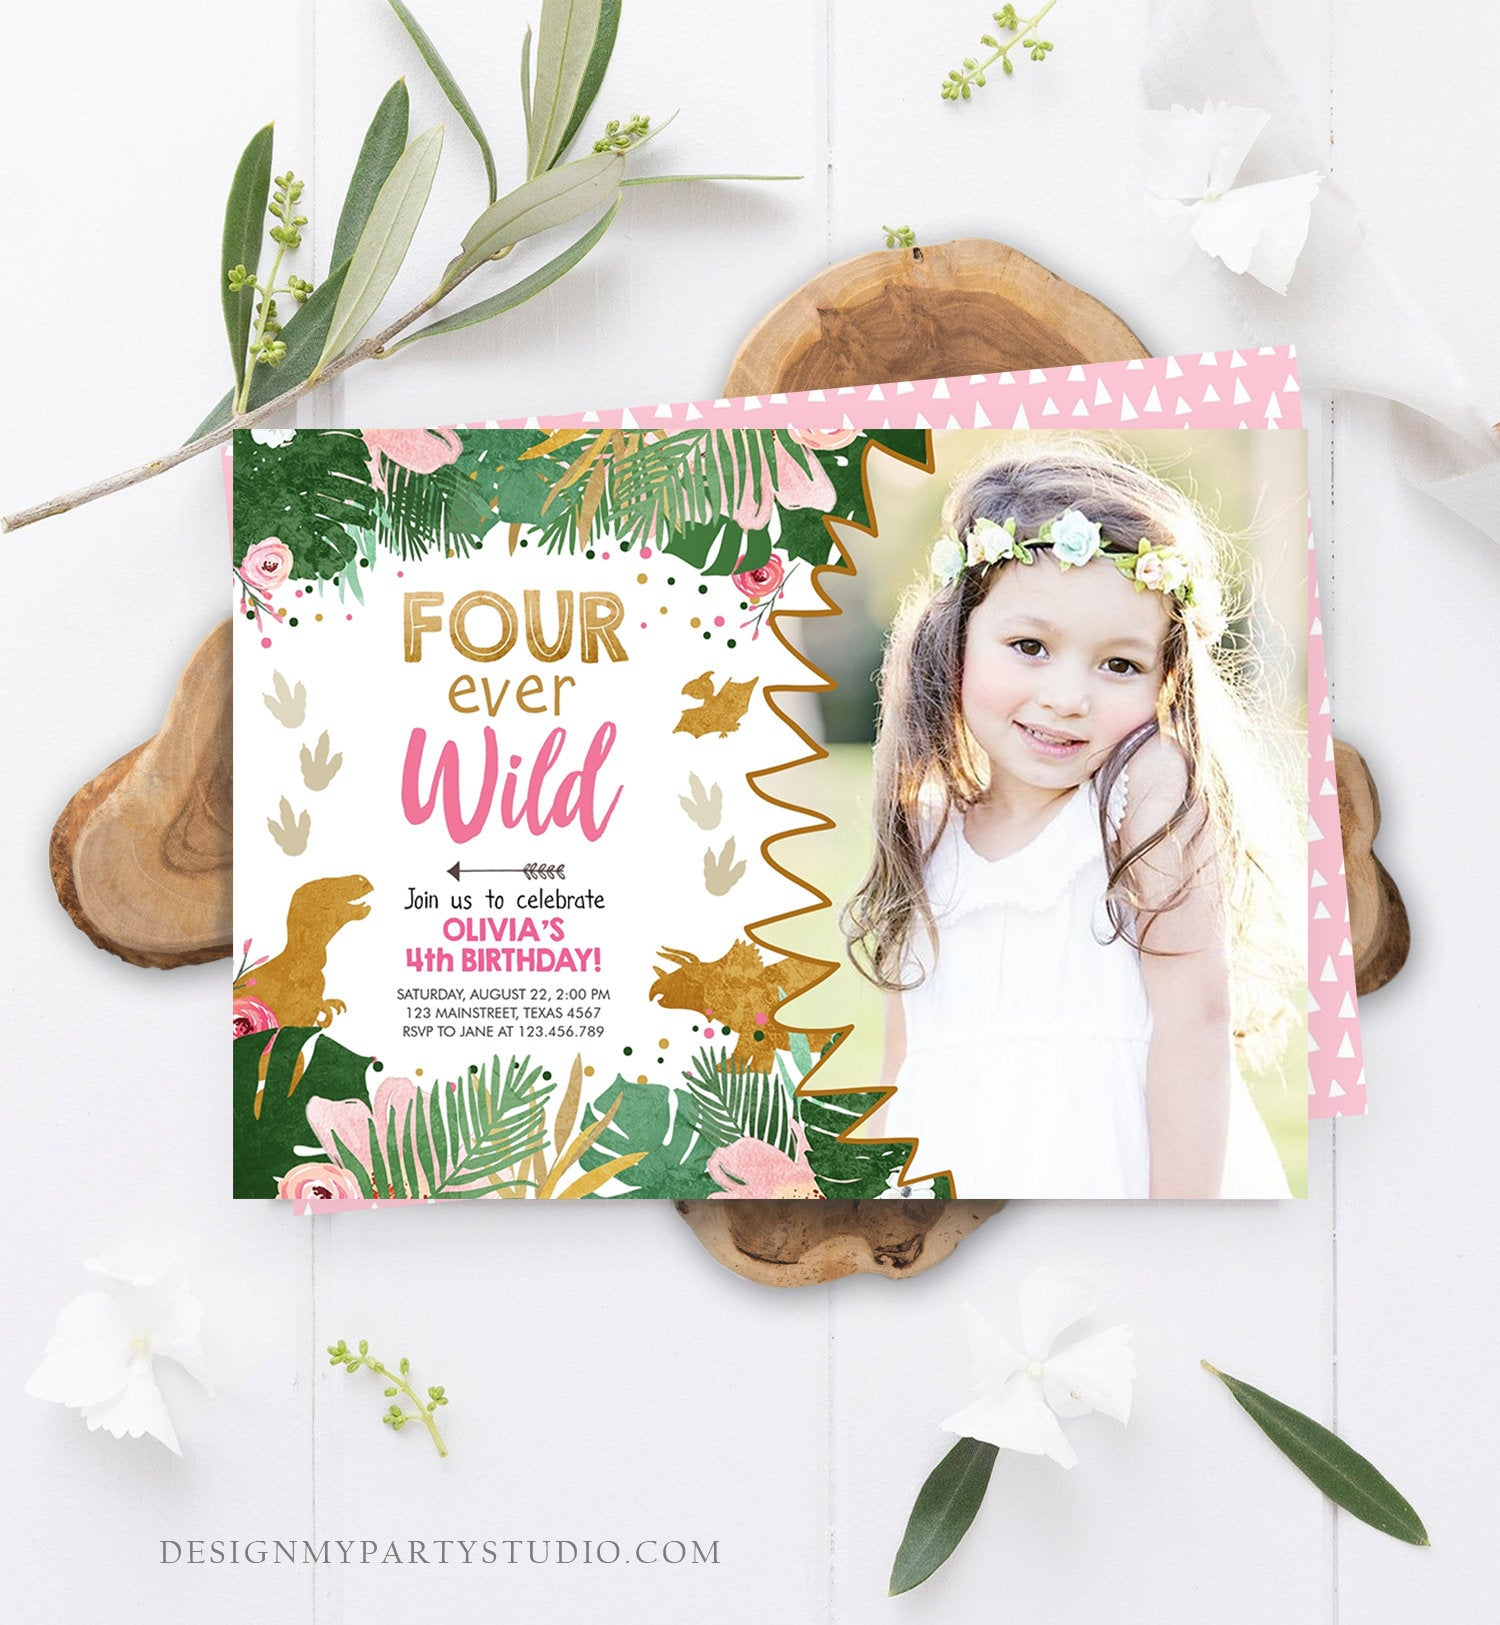 Editable Four Ever Wild Birthday Invitation Dinosaur Dino Party Girl 4th Fourth Birthday Pink Gold Fourever Corjl Template Printable 0146